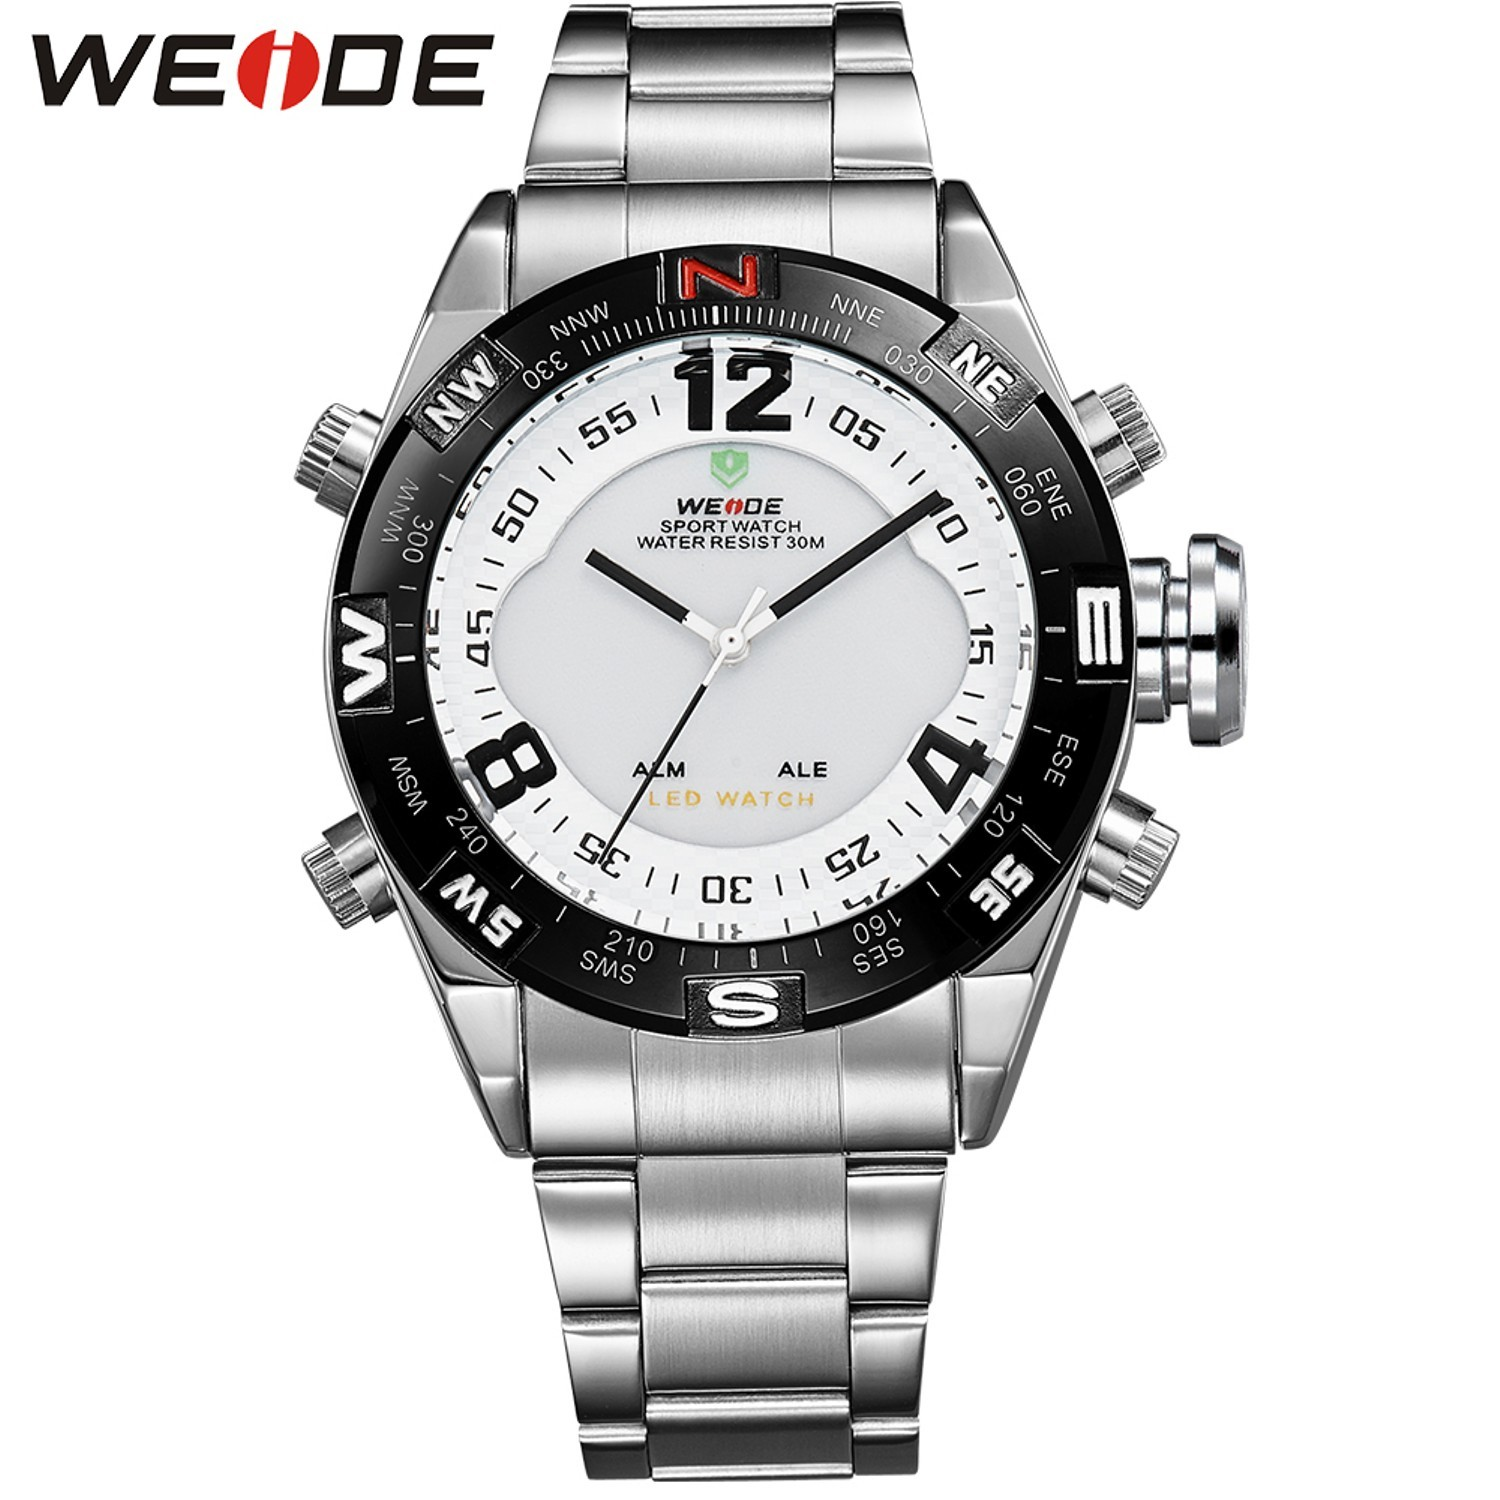 WEIDE-Original-Brand-Silver-Stainless-Steel-Watch-Men-Sports-LED-Analog-Digital-Army-Military-Quartz-Movement_1500x1500_STRETCH_517.jpg